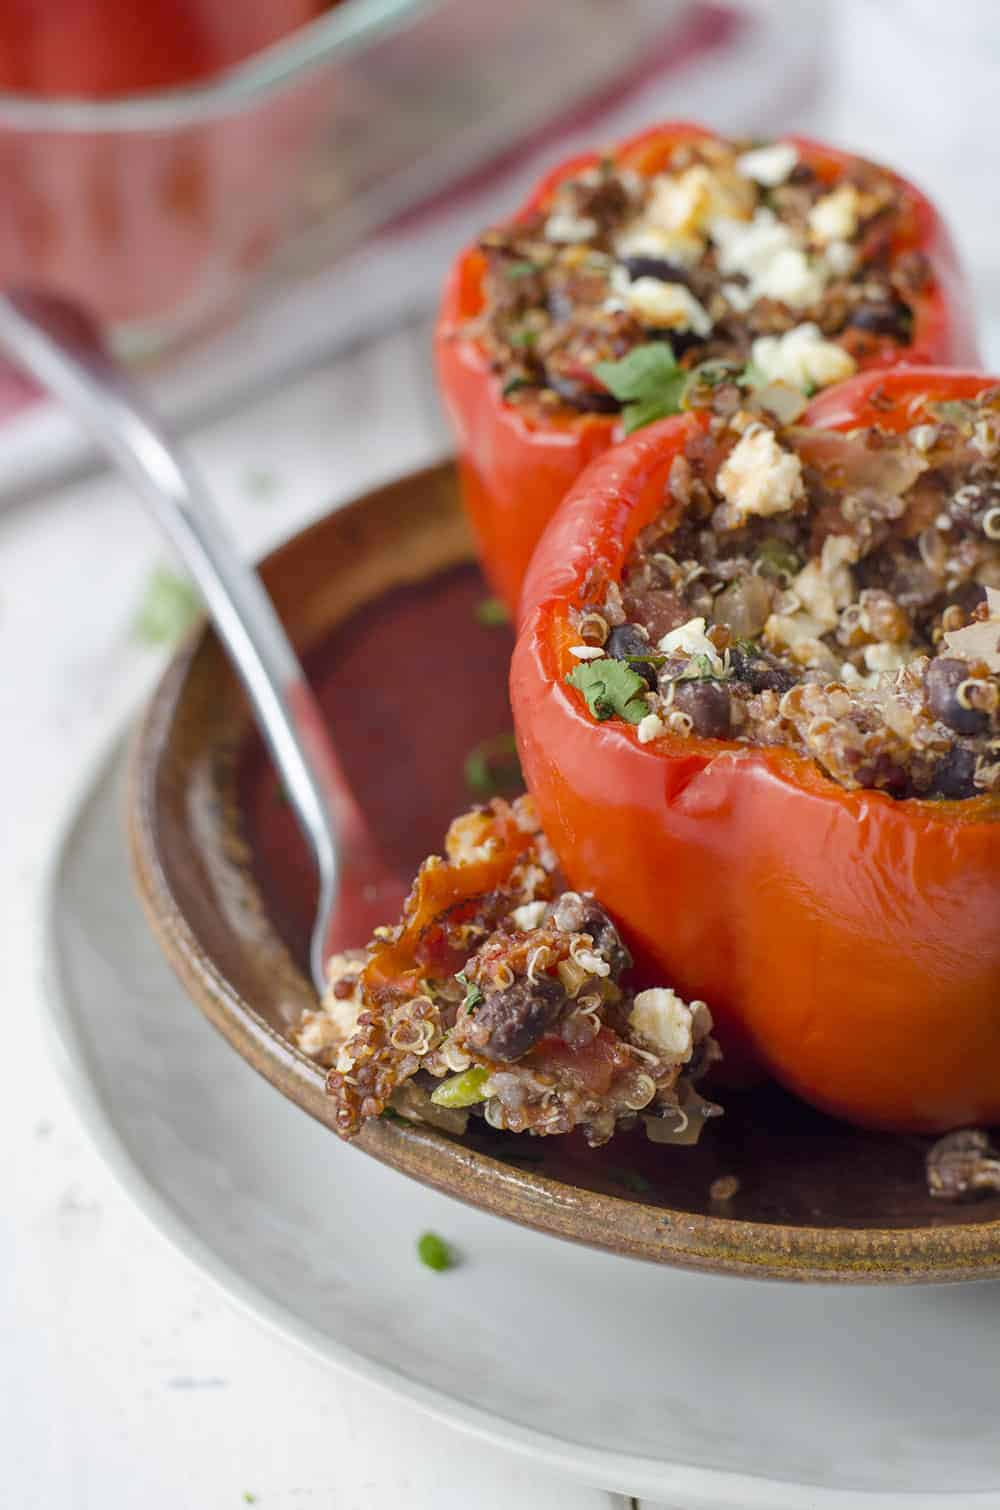 Southwestern Quinoa Stuffed Peppers! Vegetarian and Gluten-Free! These protein packed peppers are so easy to put together and perfect for busy weeknights. Save these to make later! | www.delishknowledge.com